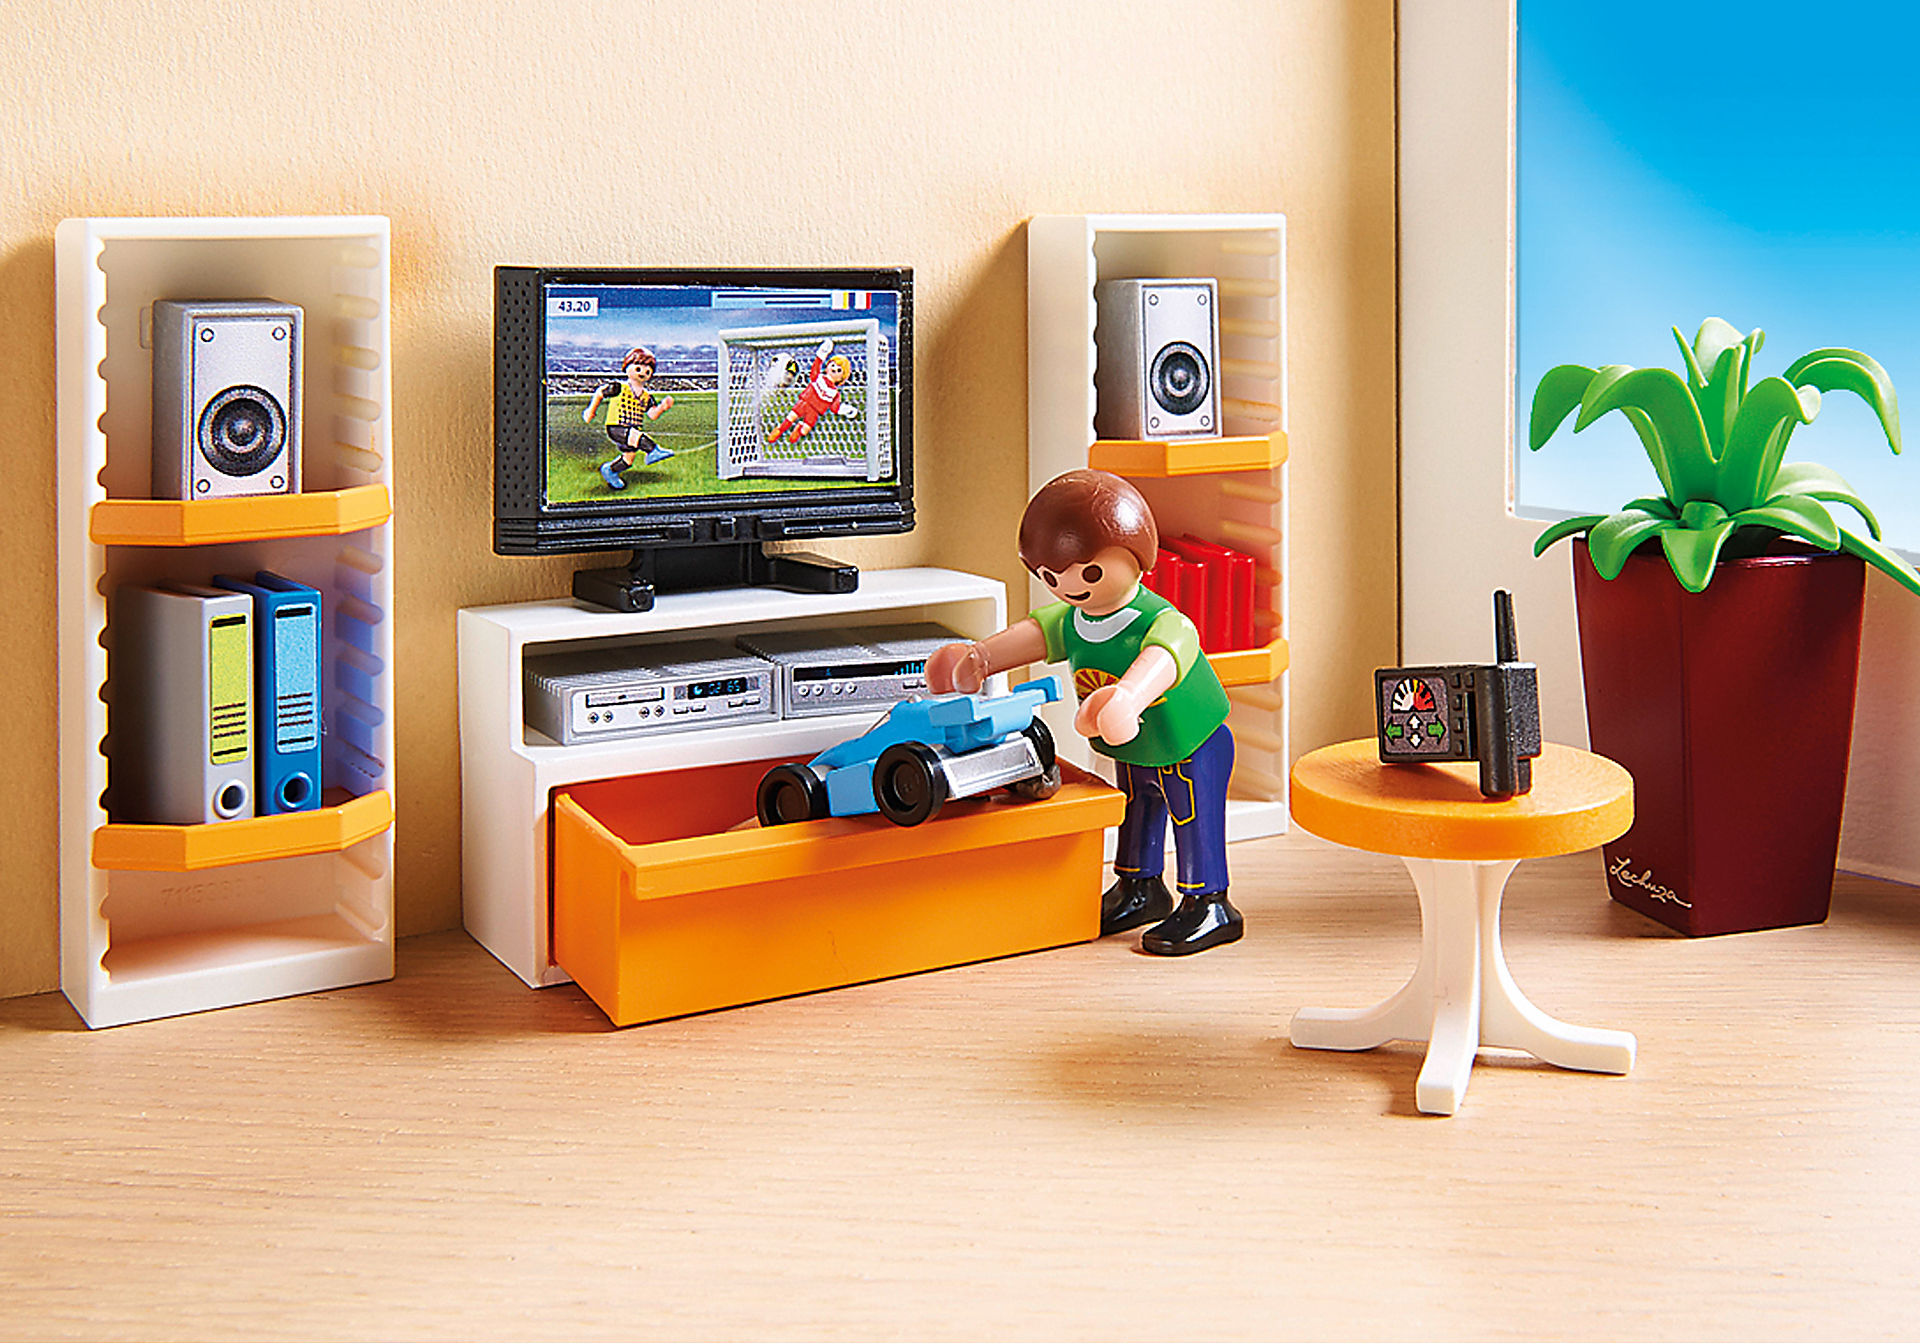 http://media.playmobil.com/i/playmobil/9267_product_extra2/Salon équipé